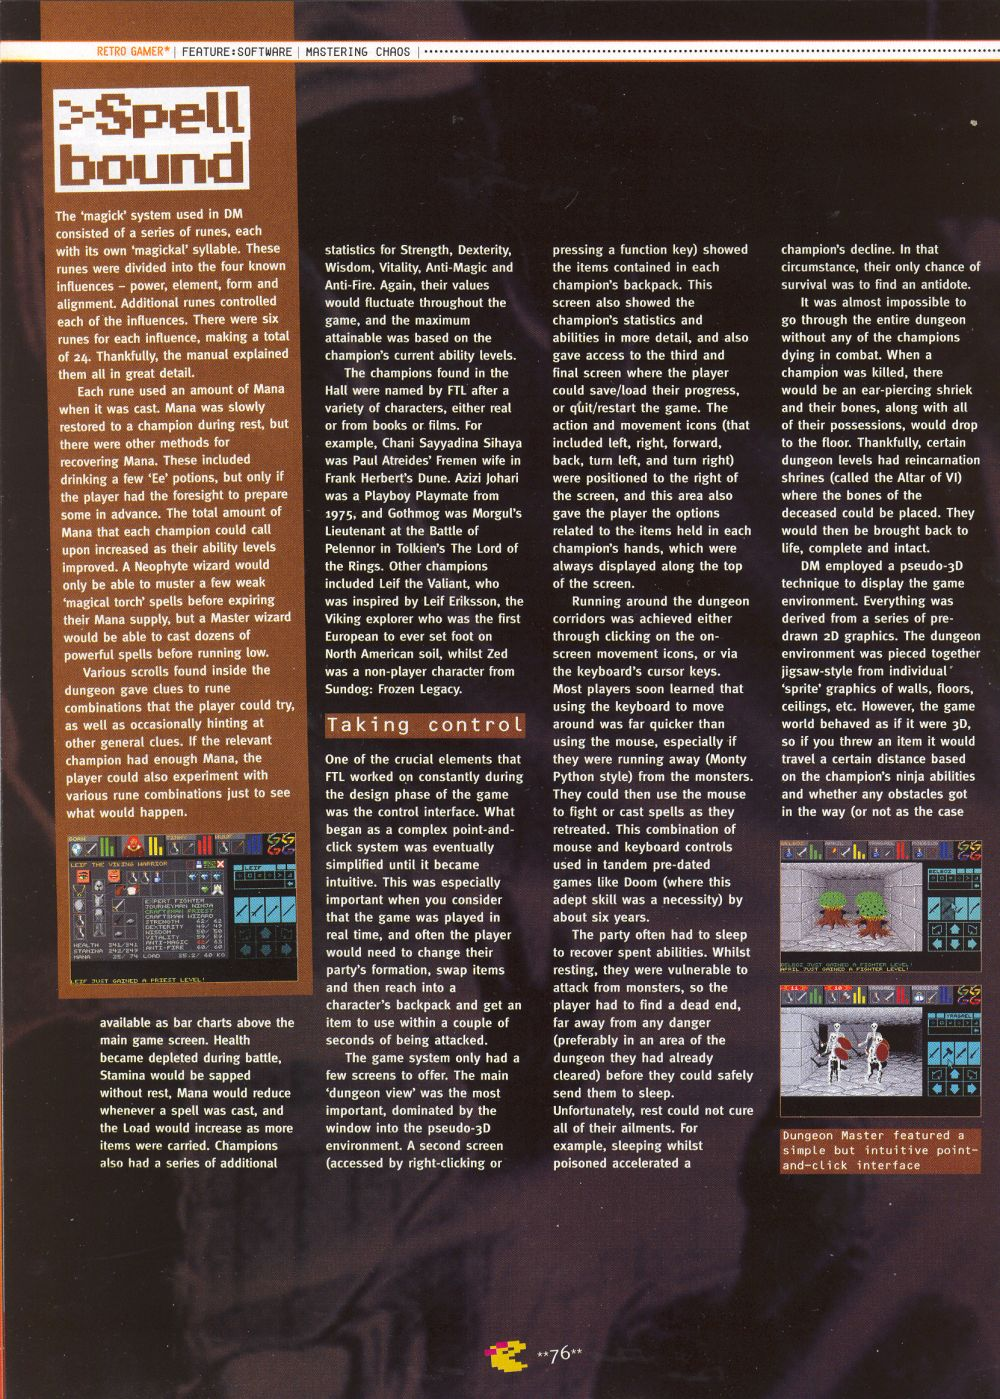 An article titled 'Mastering Chaos', printed in issue 10 of 'Retro Gamer' and written by Richard Hewison Page 05